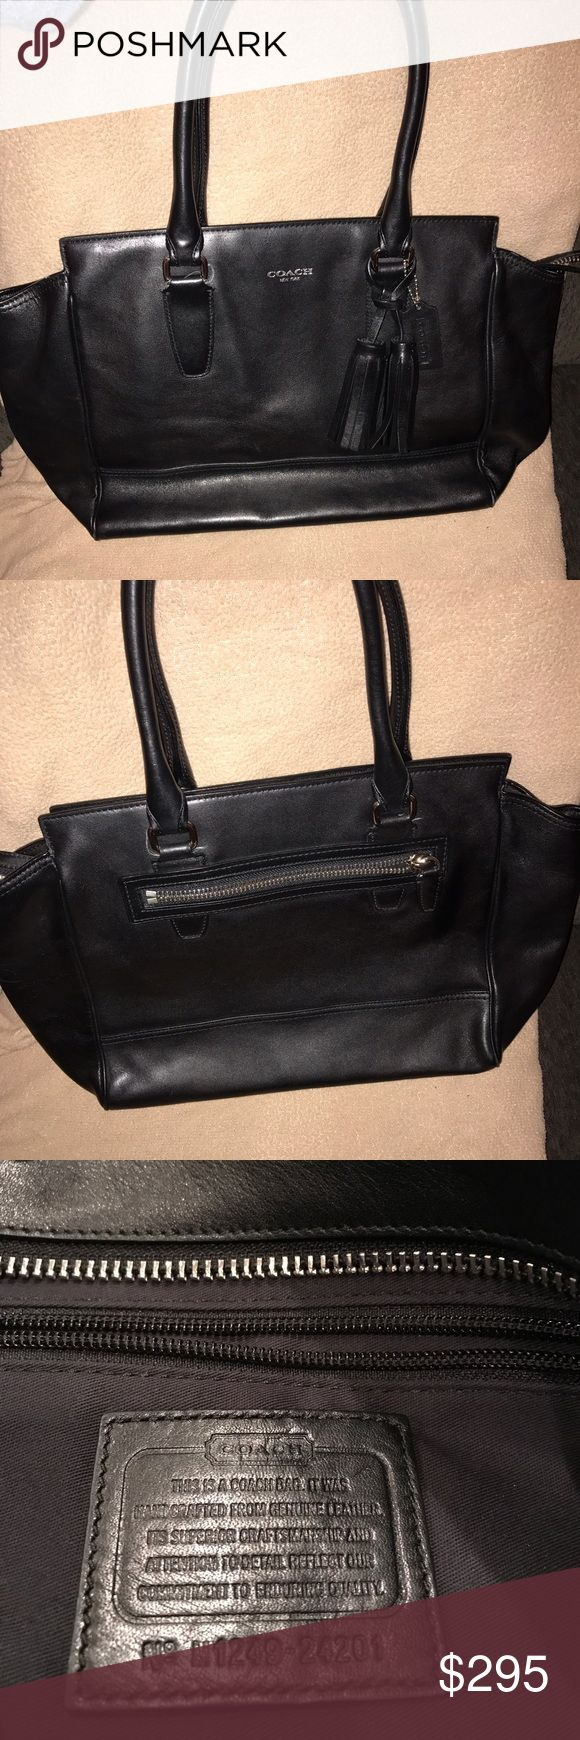 Coach Legacy Satchel Handbag Like new condition. Only worn once. Beautiful black leather, no damage to the bag. Can be worn on arm or on shoulder. Roomy inside. Smoke free, pet free home. Coach Bags Shoulder Bags